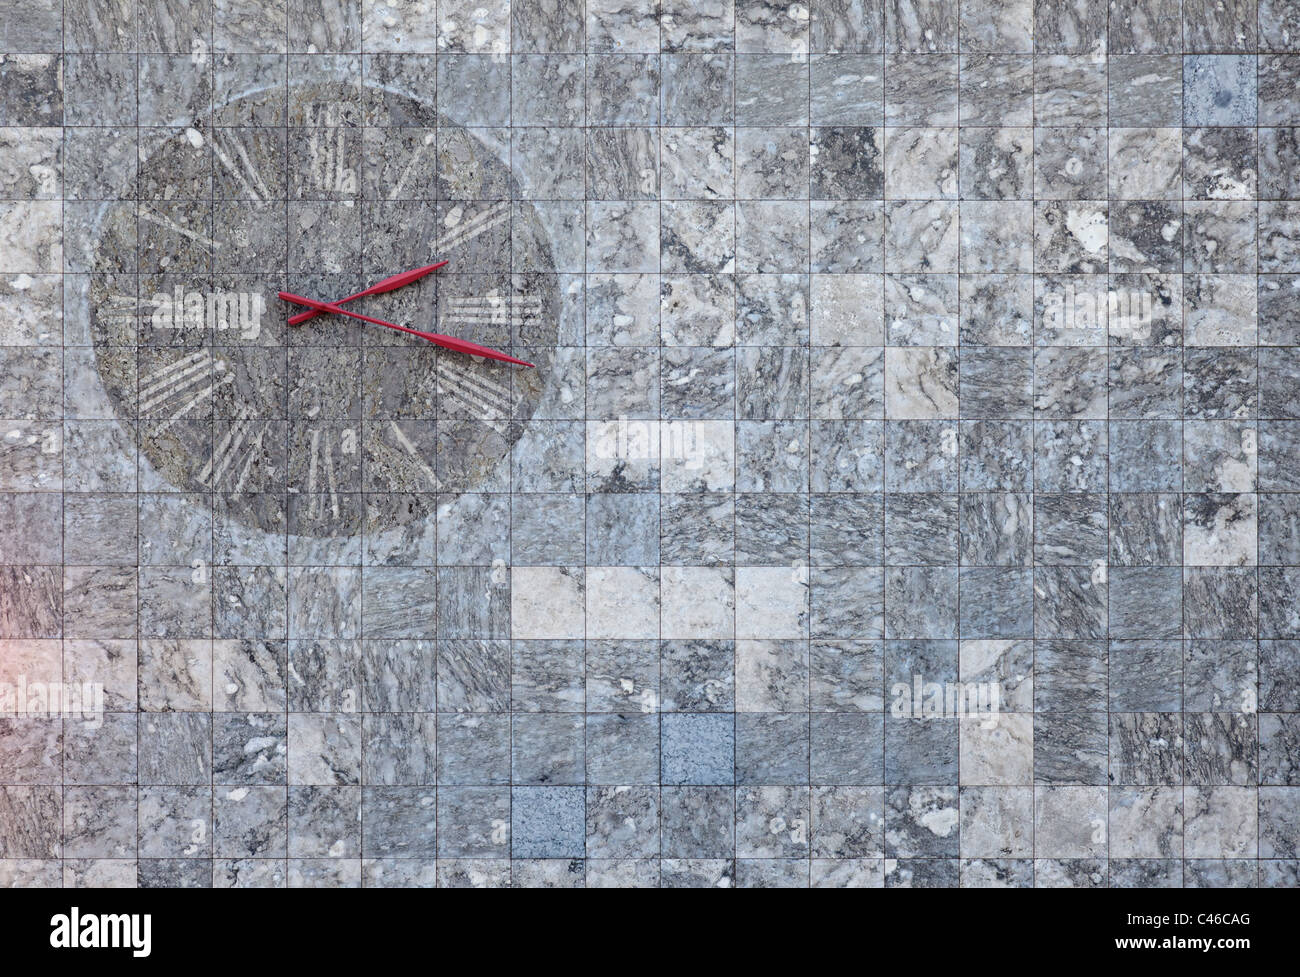 A marble wall clock found in Mainz, Germany. Suitable for images regarding time or texture bacjkgrounds. - Stock Image